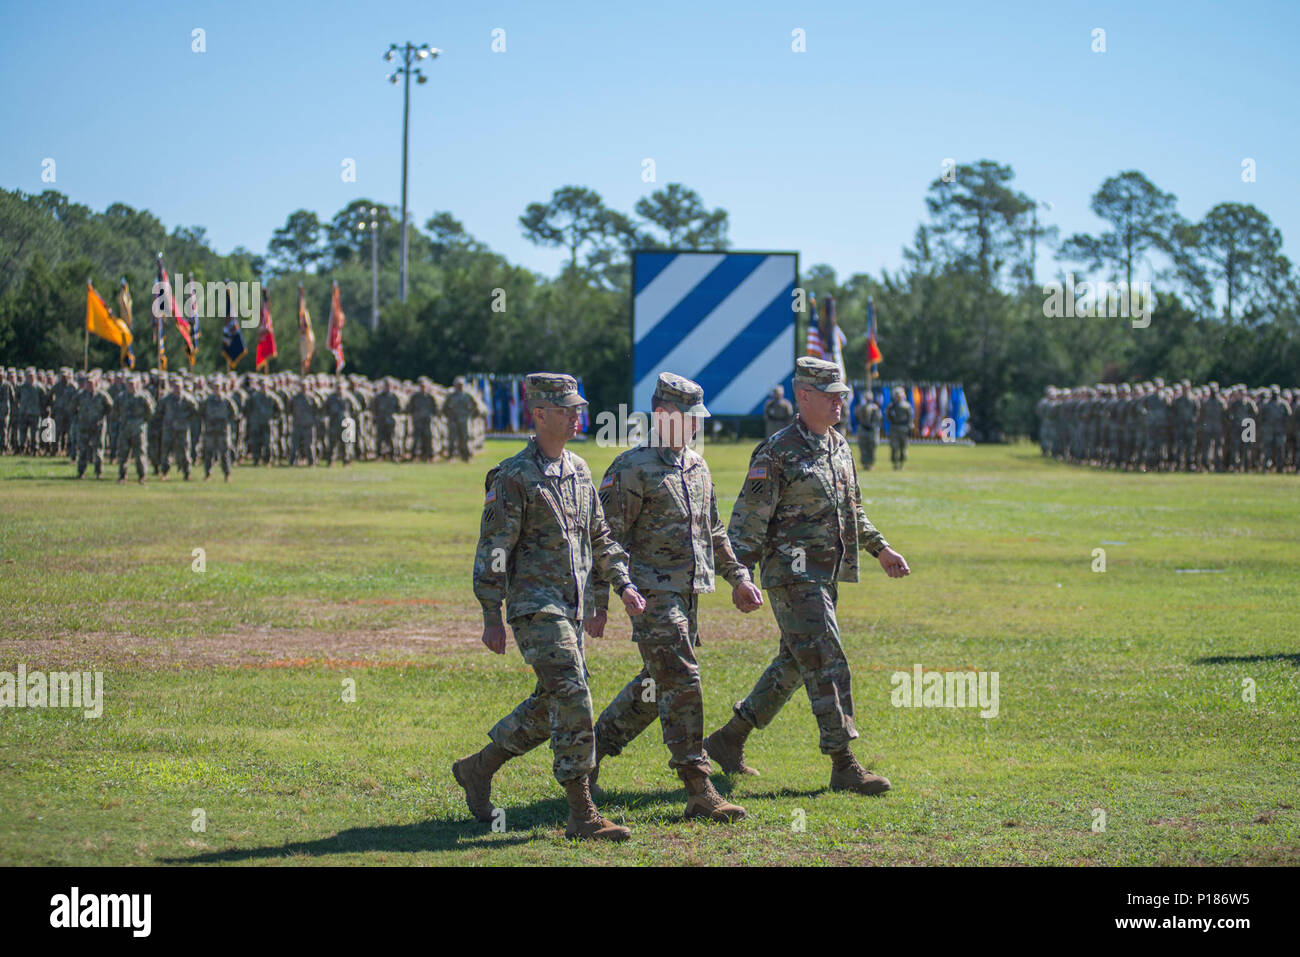 Maj. Gen. Leopoldo Quintas, left, incoming Commander of 3rd Infantry Division, Gen. Robert Abrams, center, Commander U.S. Forces Command, and Maj. Gen. James Rainey, right, outgoing Commanding General 3rd Infantry Division, complete the inspection of troops. The 3rd Infantry Division change of command ceremony was held on Cotrell Field at Fort Stewart, GA, May 8, 2017. Stock Photo